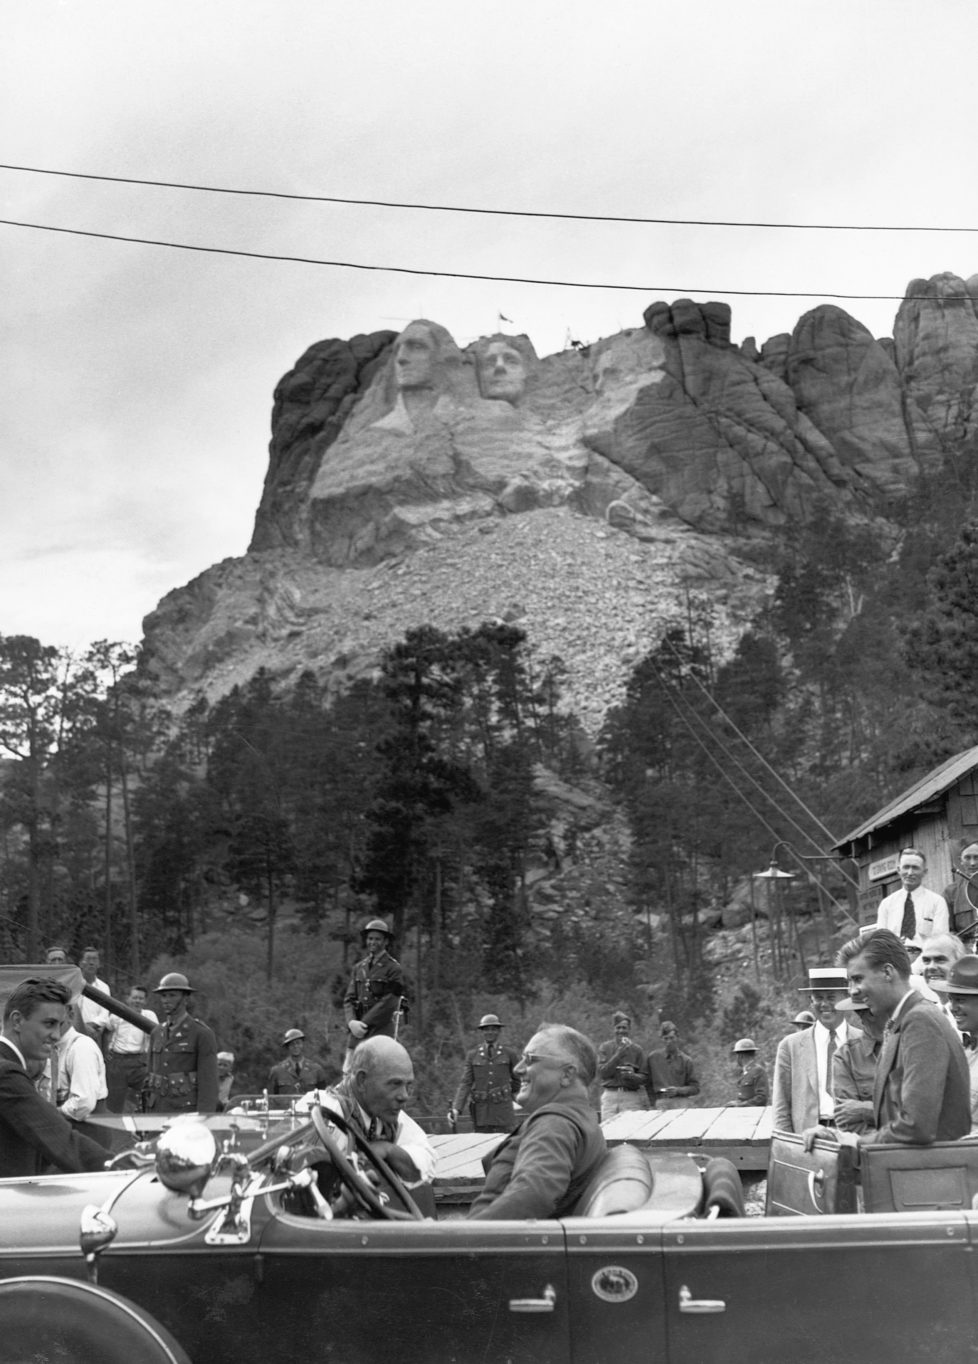 President Franklin Roosevelt talks with Mount Rushmore sculptor Gutzon Borglum during a trip to dedicate the sculpture of Thomas Jefferson. The President's sons, Franklin Jr. (far left) and John (far right) accompanied the President on this trip. | Location: Near Keystone, South Dakota, USA.